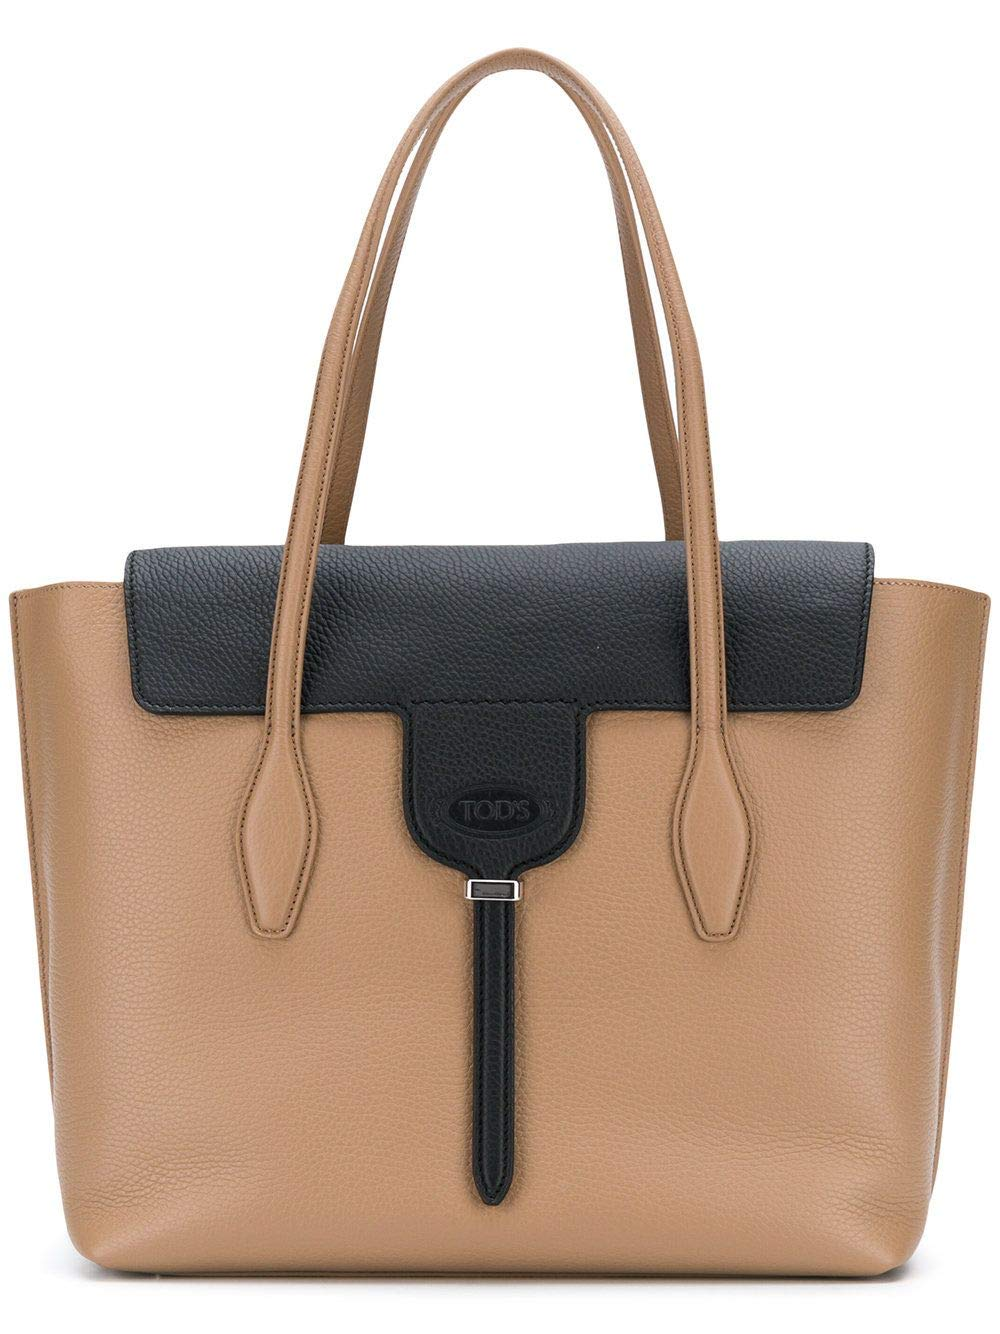 Tods Womens Xbwanxa0300rib582a Beige Leather Tote